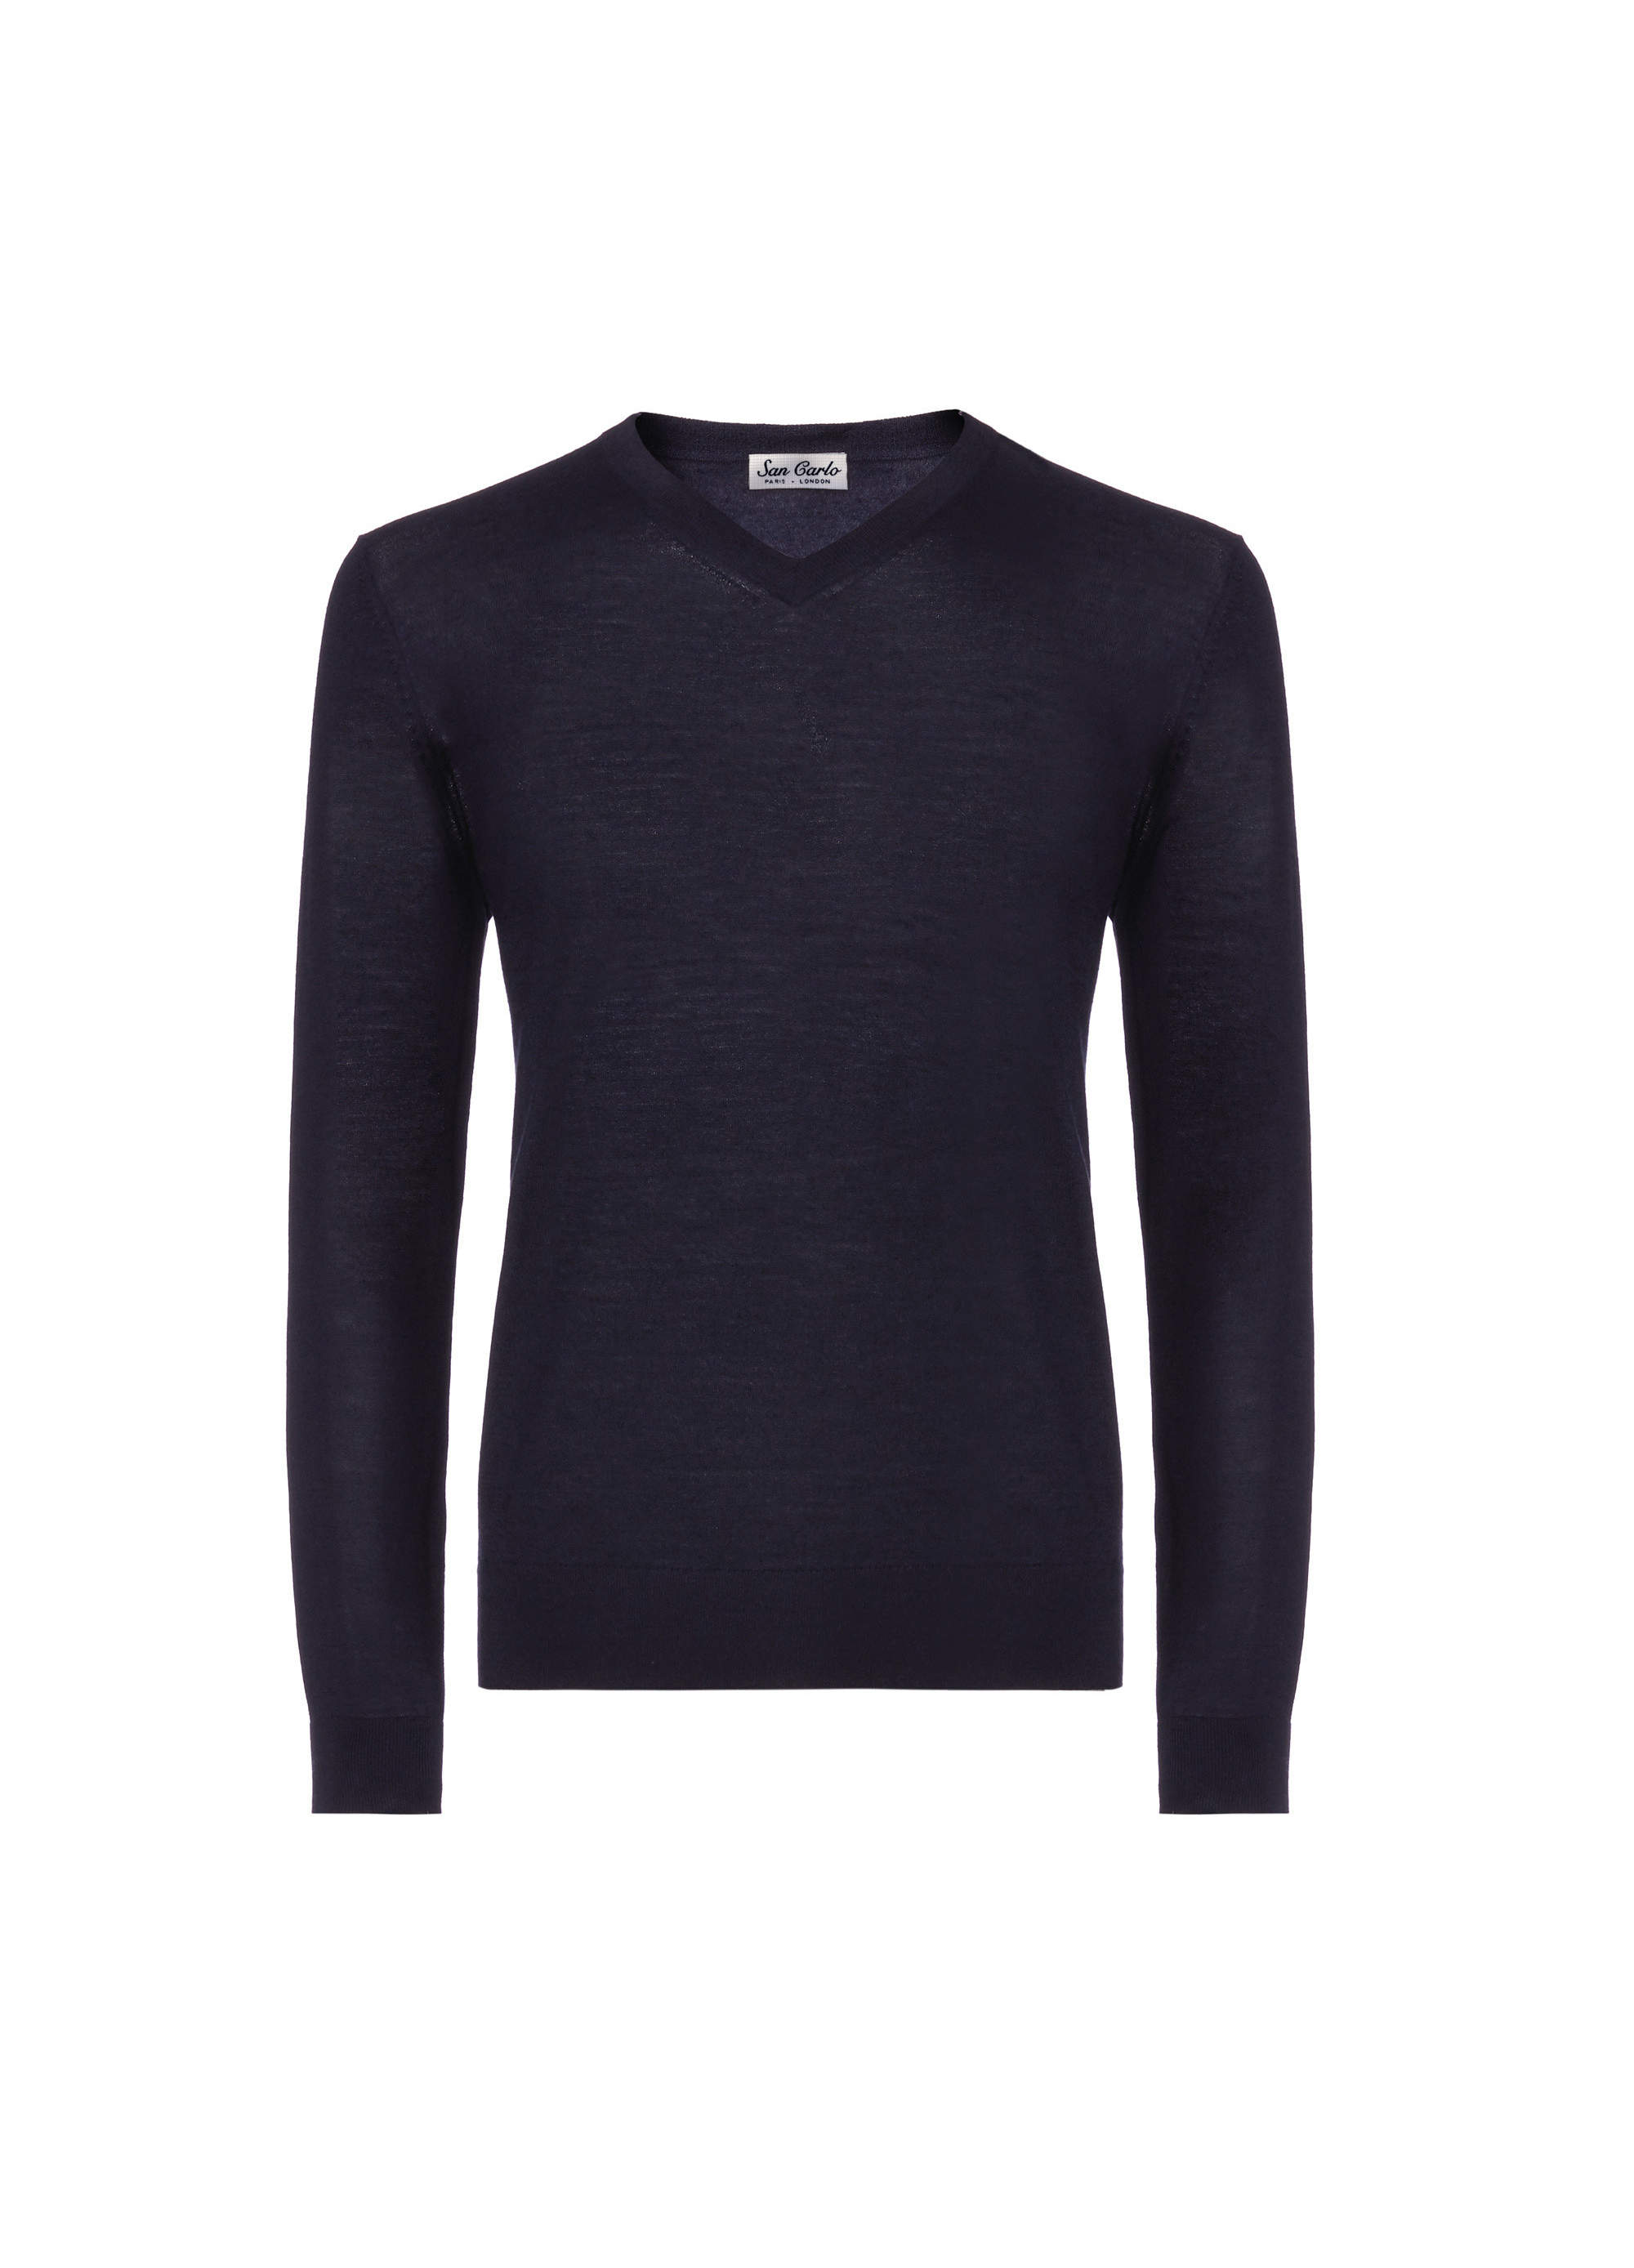 v-neck silk & cashmere navy 02.jpg